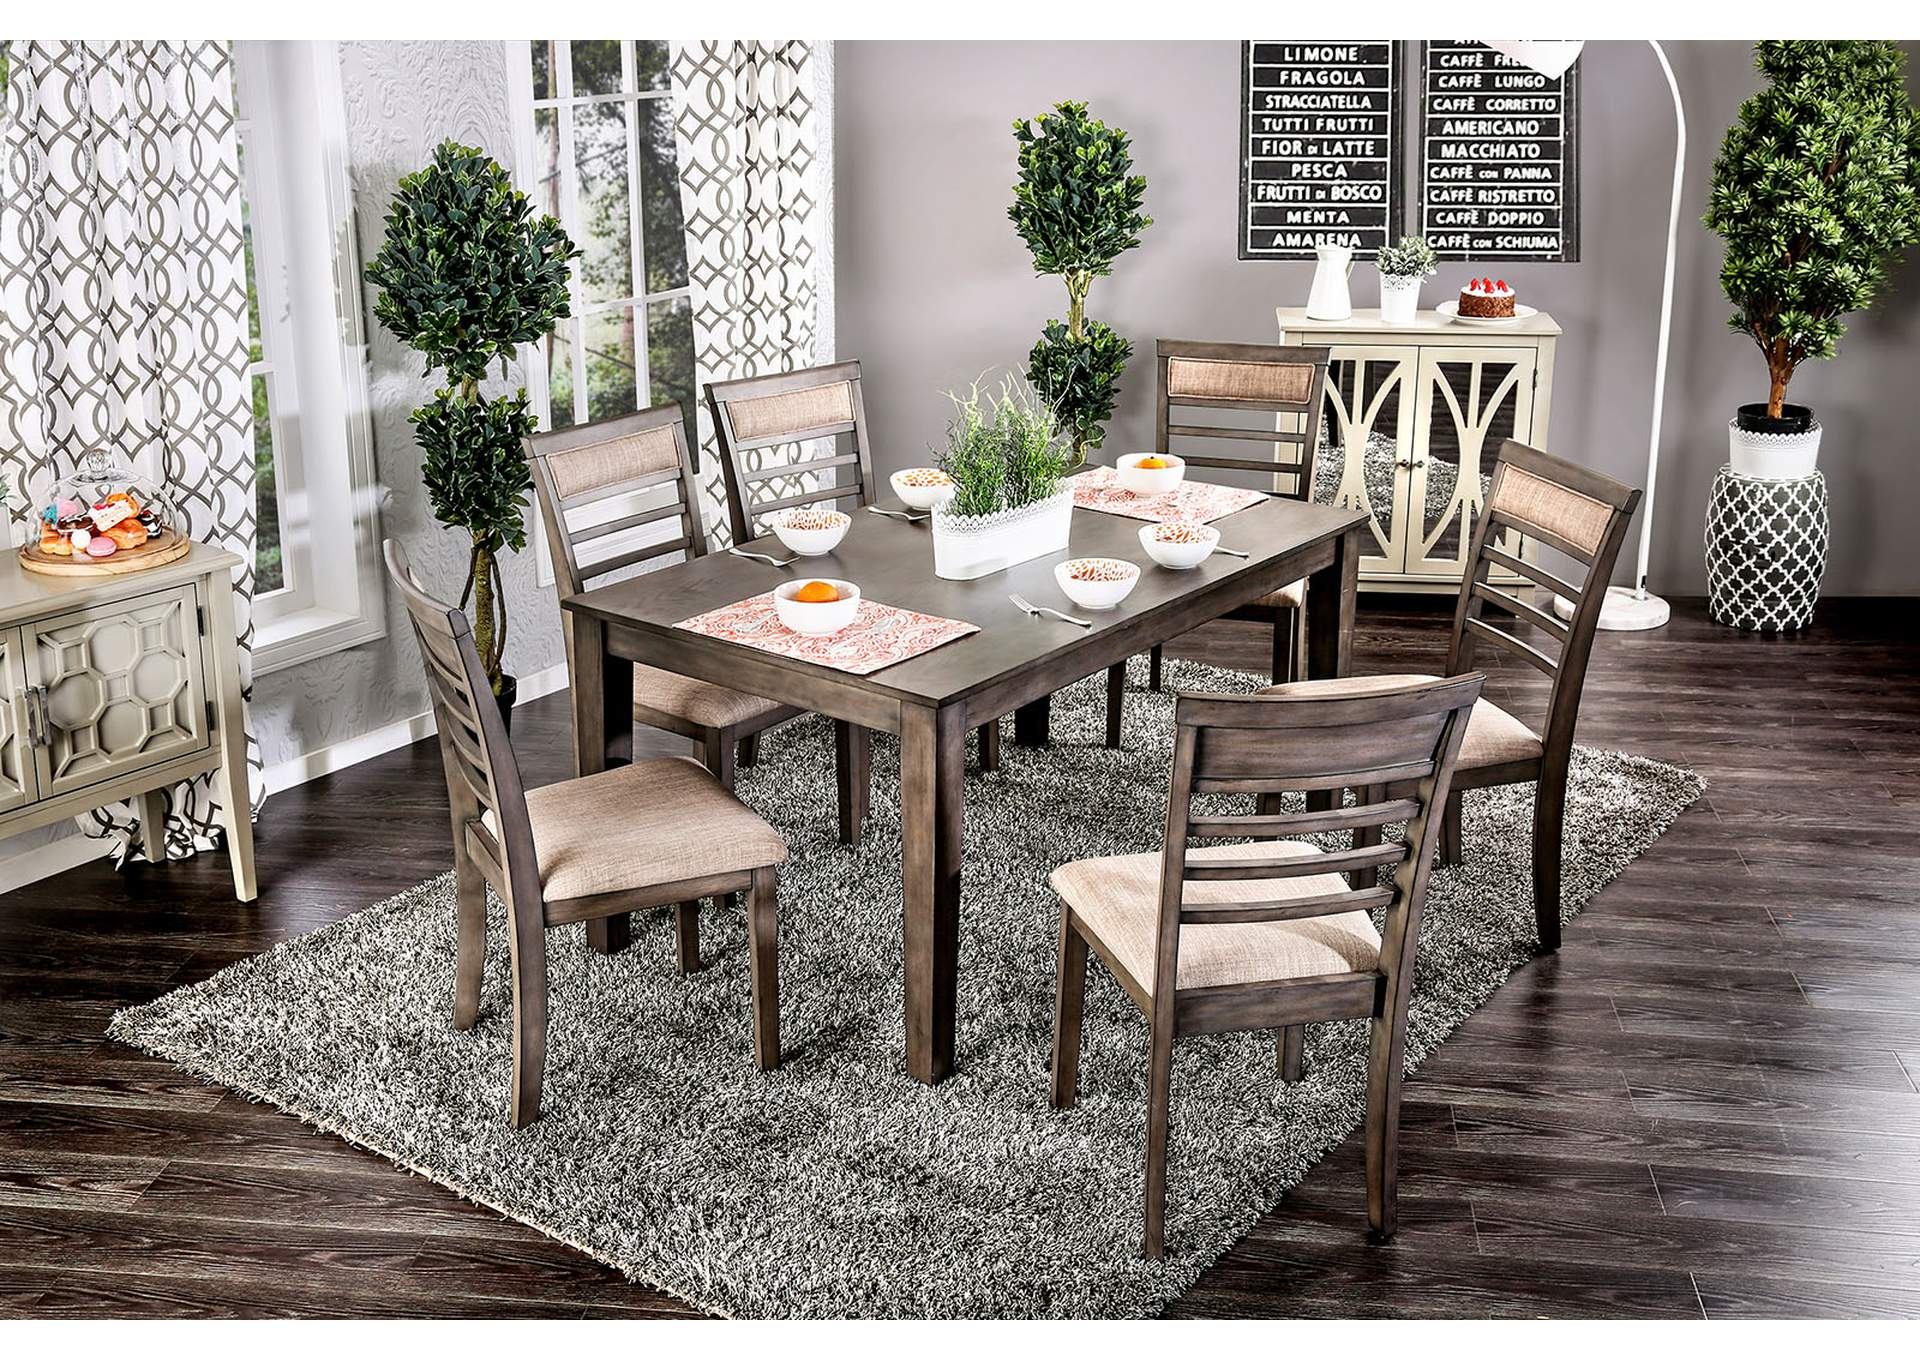 Taylah Weathered Gray 7 Piece Dining Table Set,Furniture of America